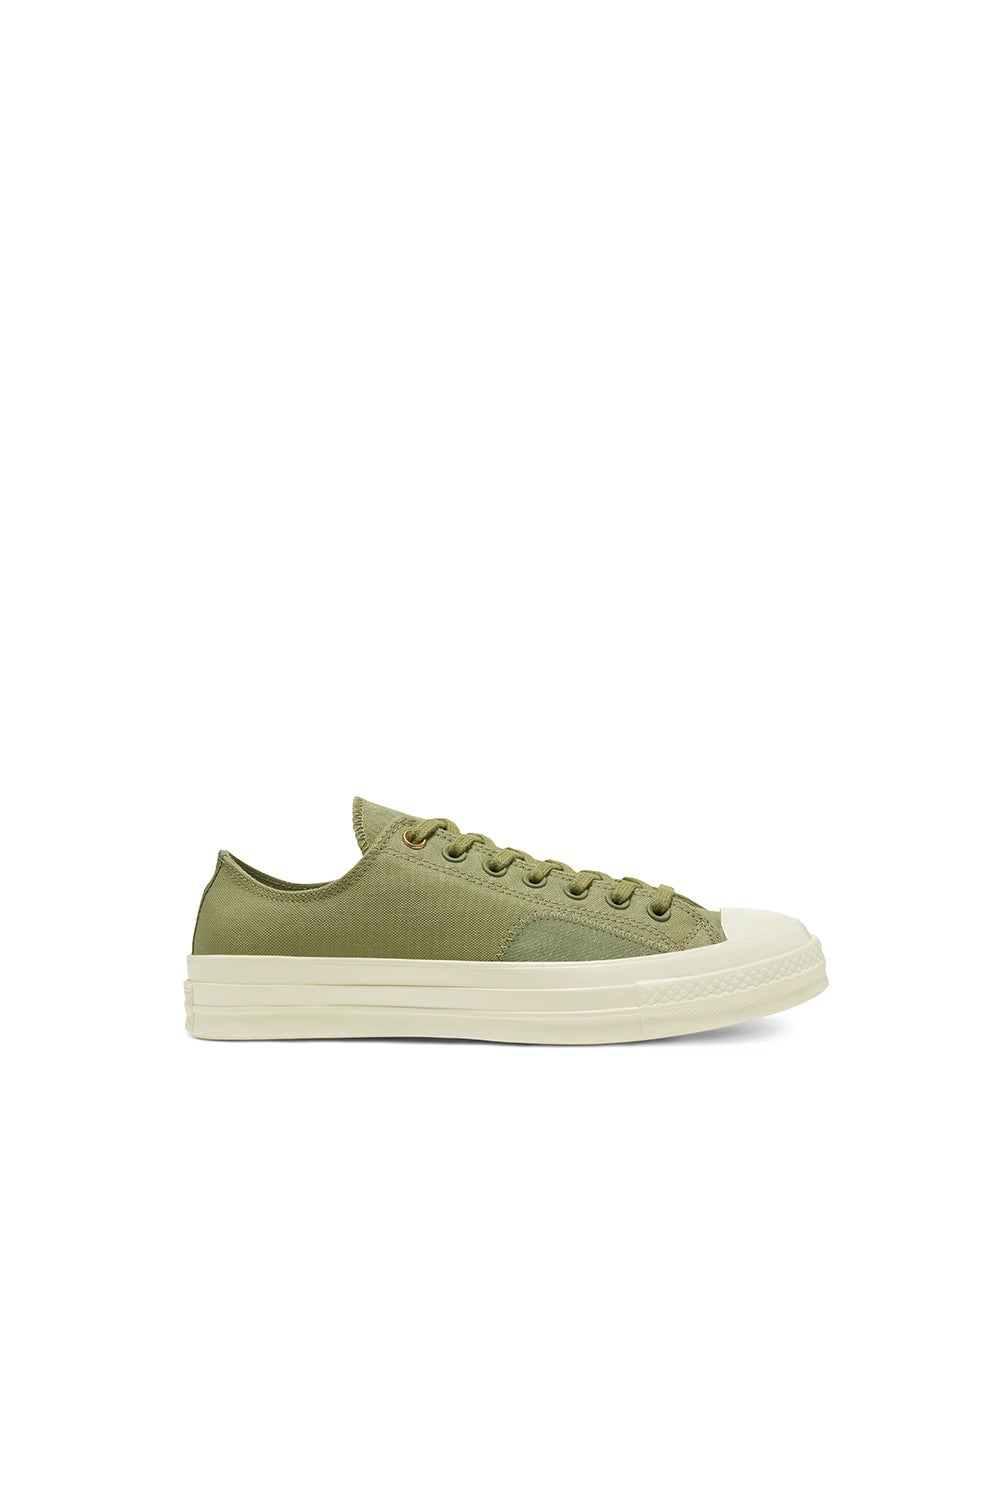 Converse Chuck Taylor All Star 70 Clean N Preme Low Sage